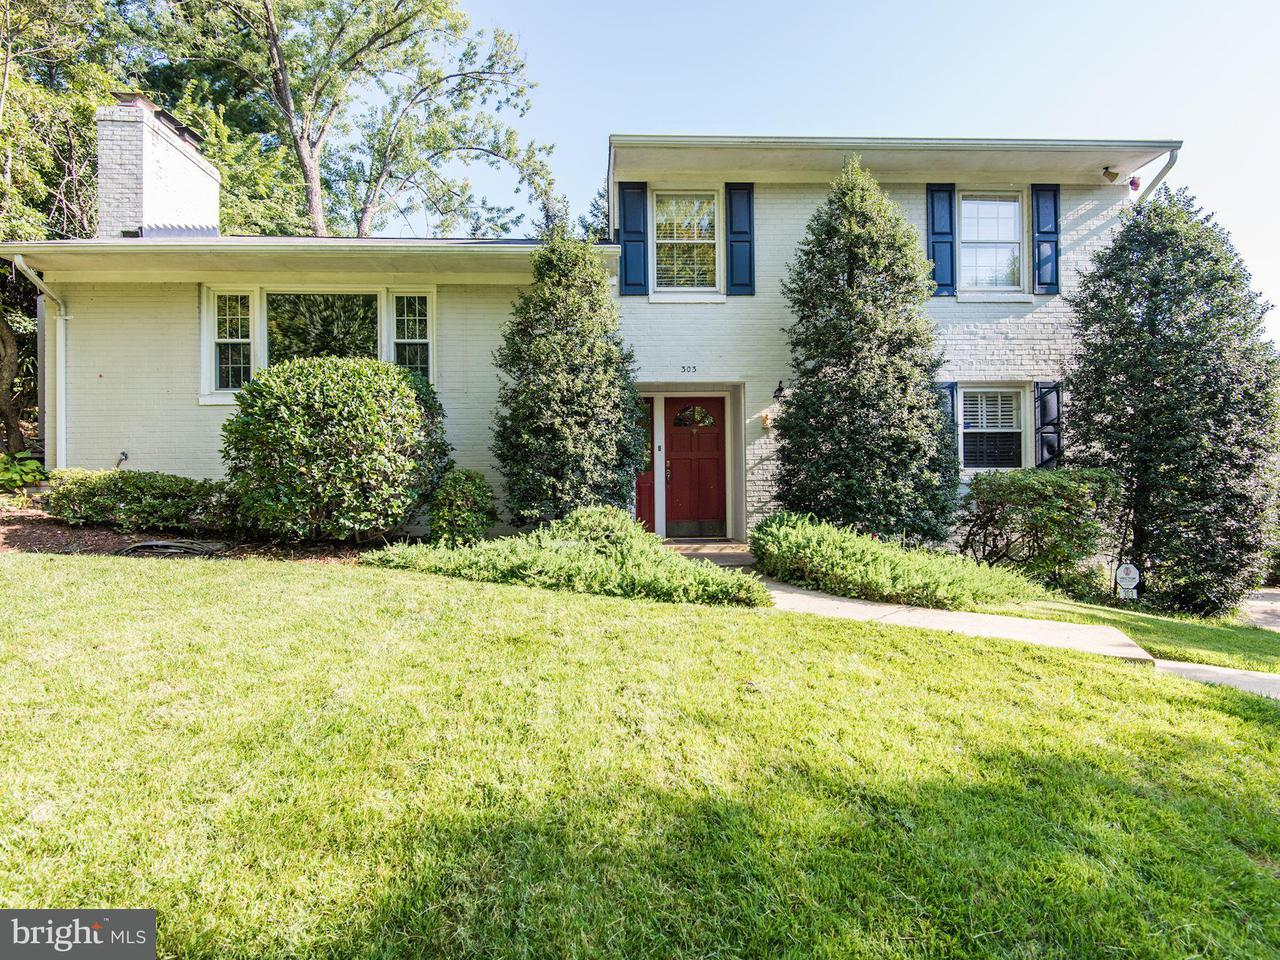 Single Family Home for Sale at 303 MOUNT Place 303 MOUNT Place Alexandria, Virginia 22305 United States